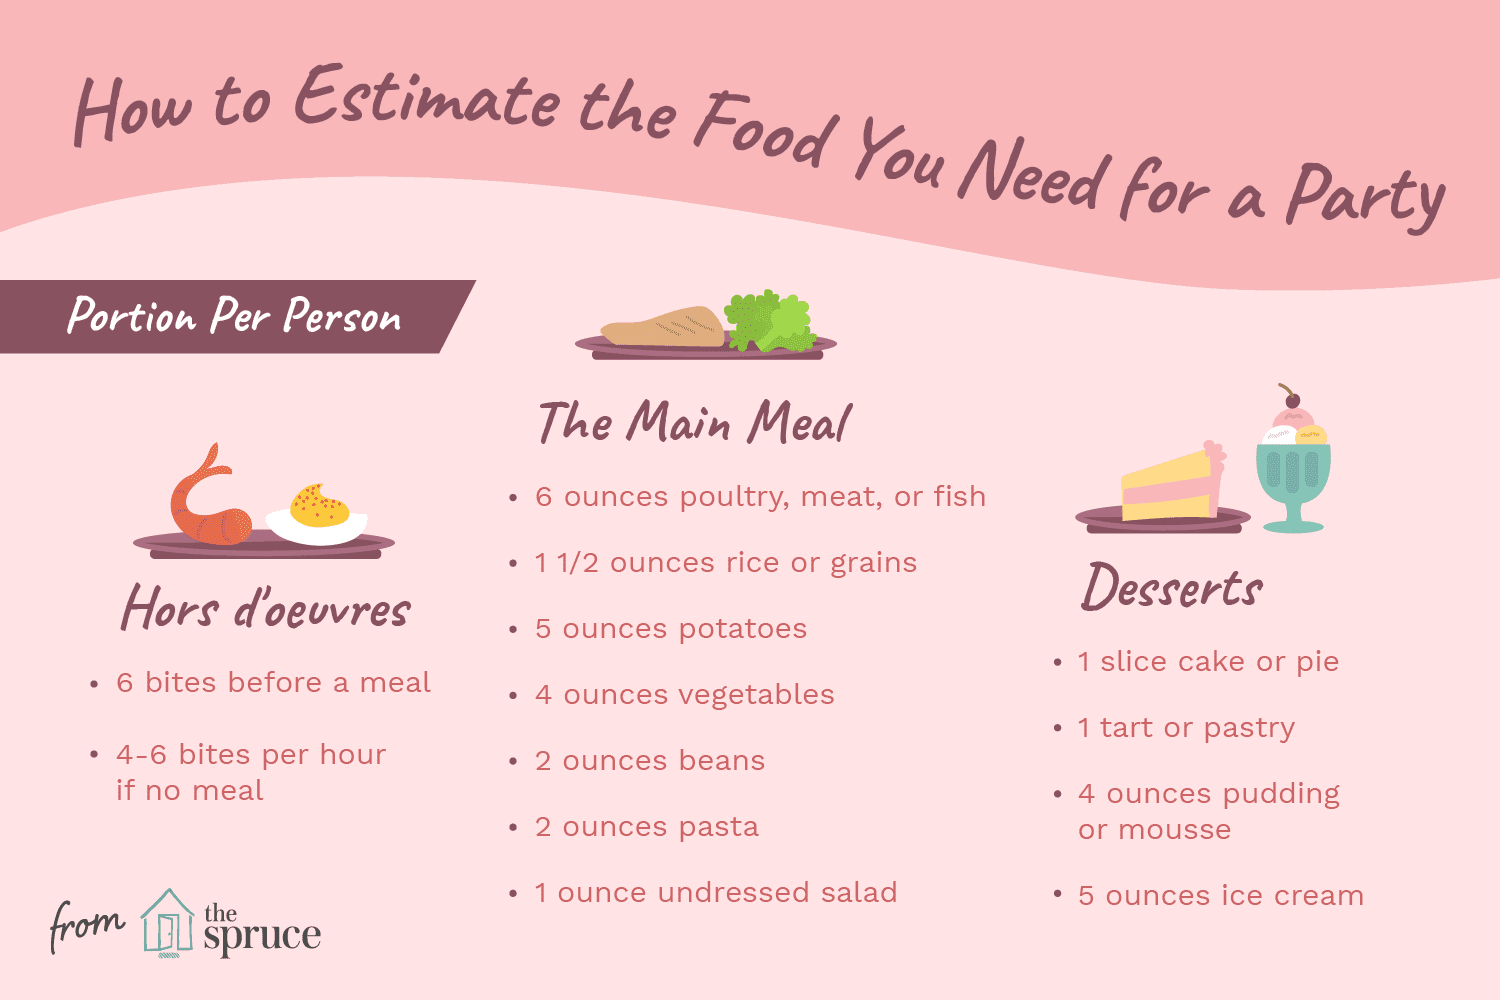 Determine How Much Food Per Person Is Enough at a Party